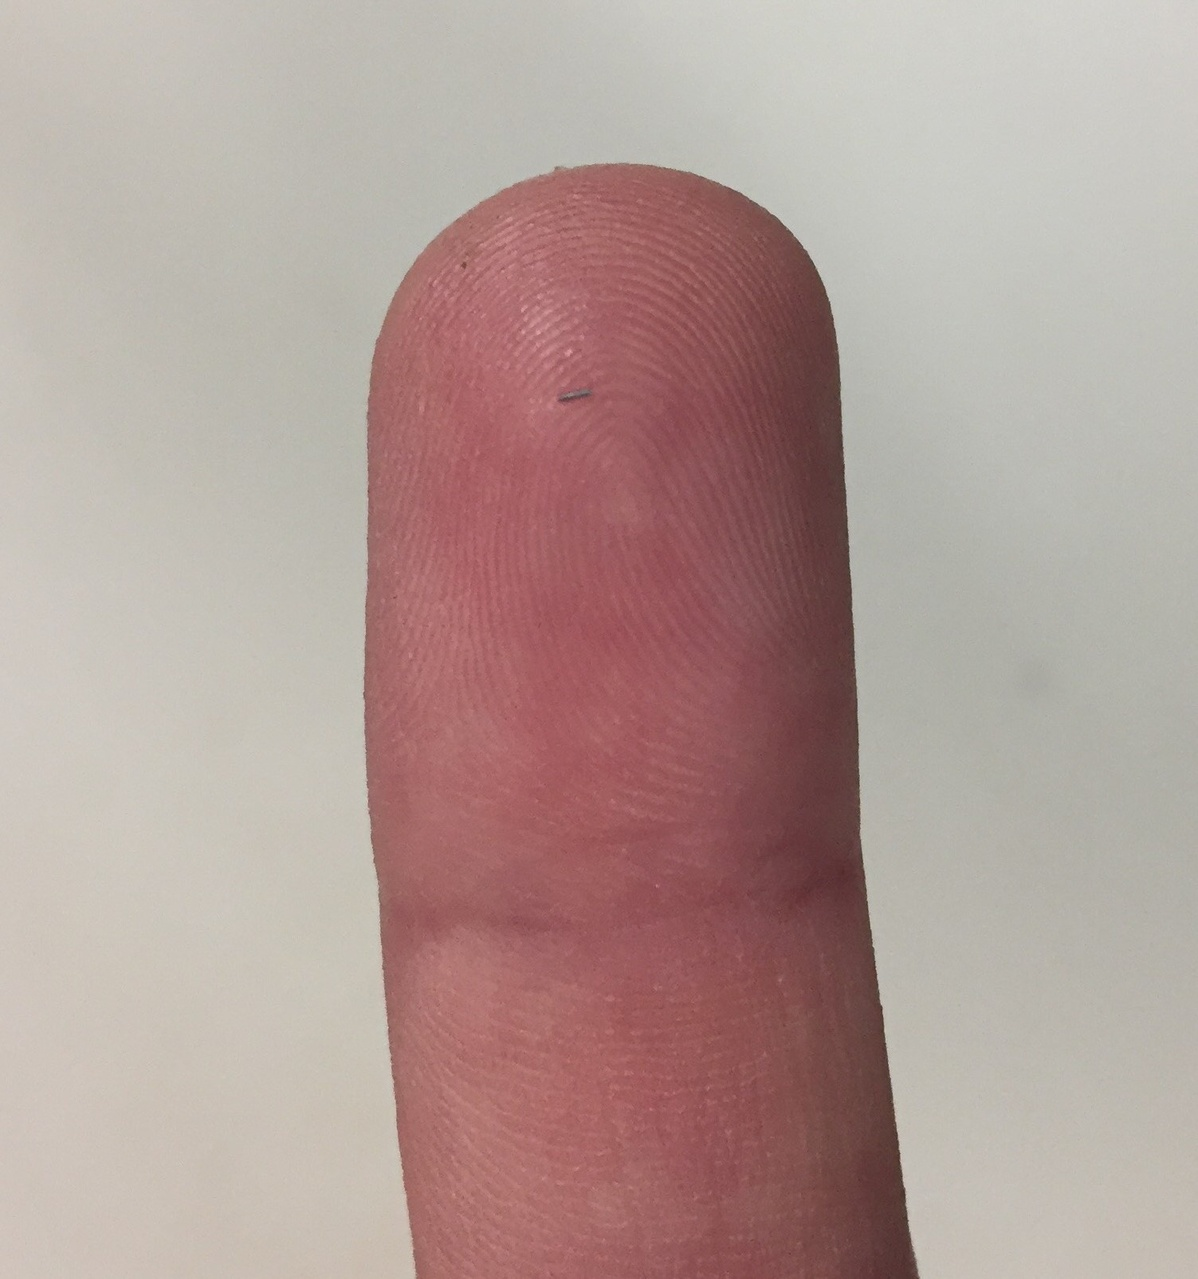 Coded-wire tag on the tip of my finger.